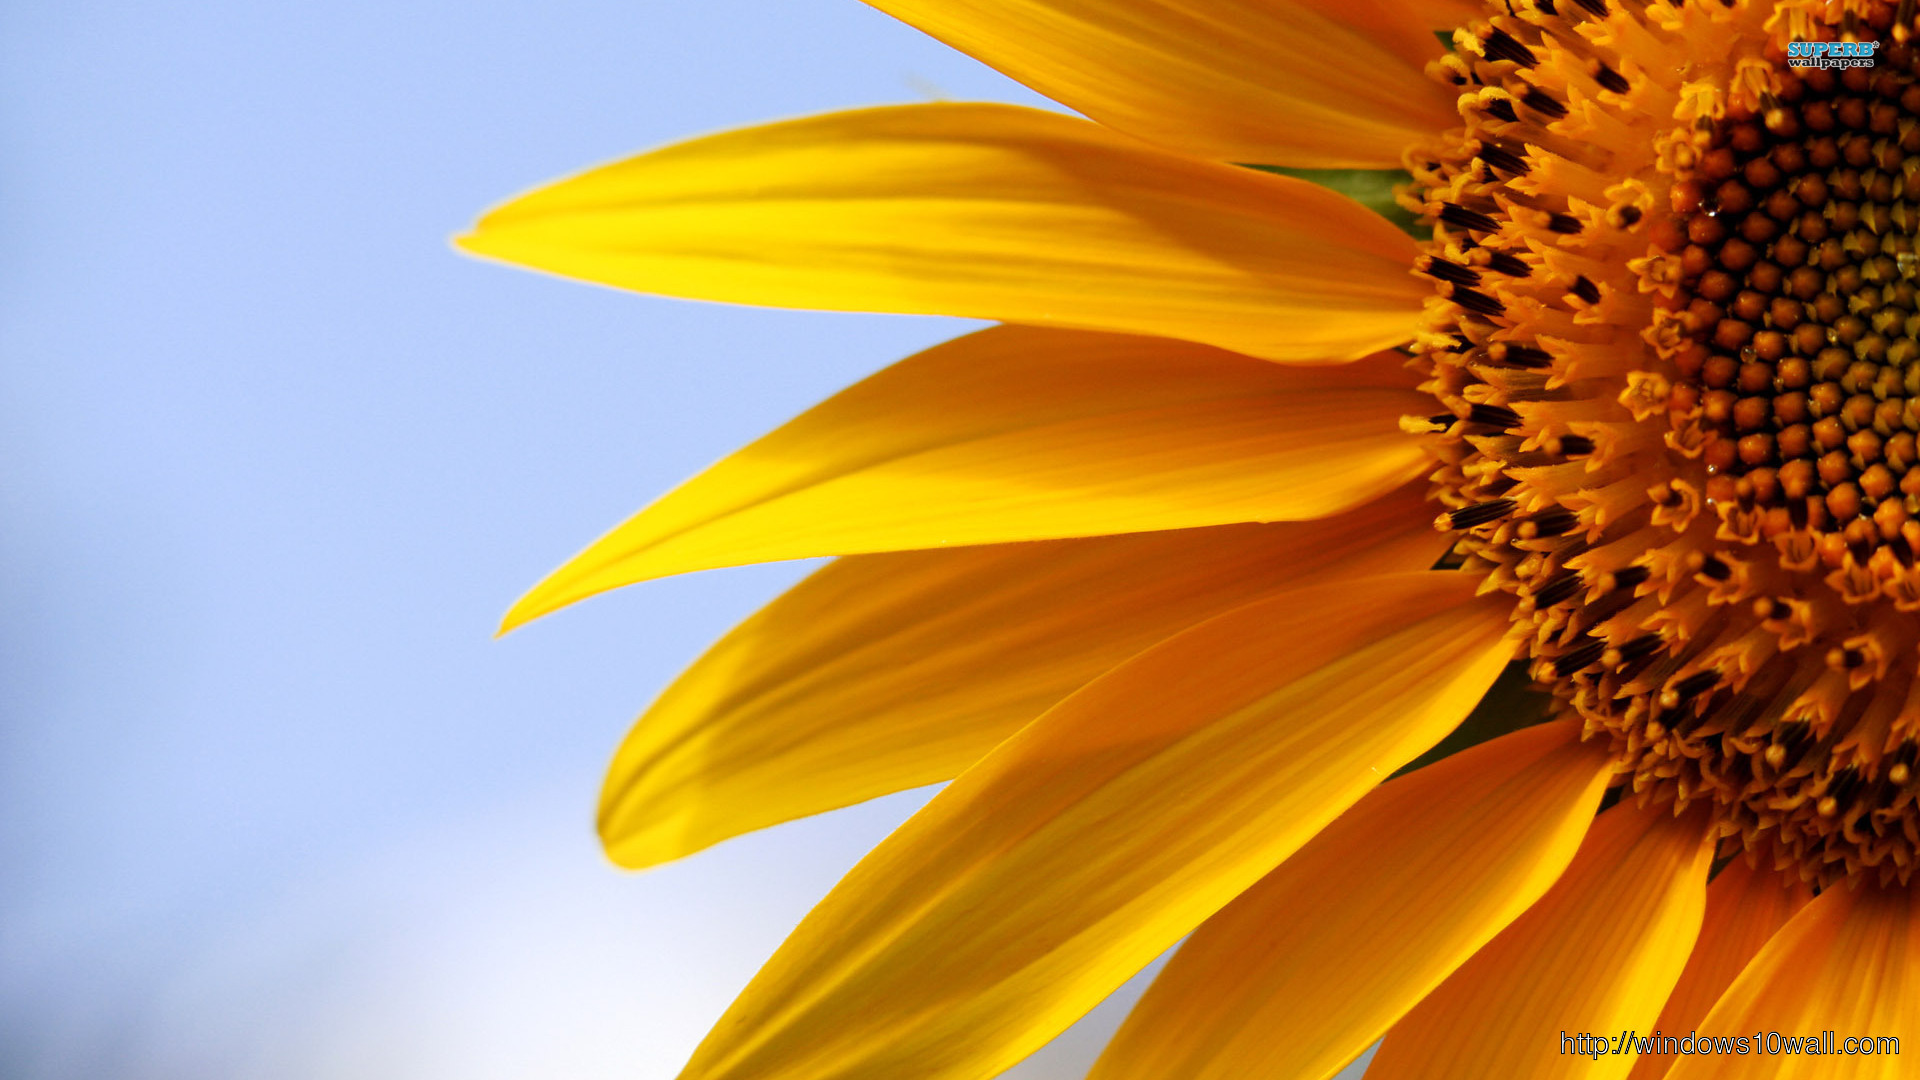 Sunflower Picture Windows 10 Wallpapers